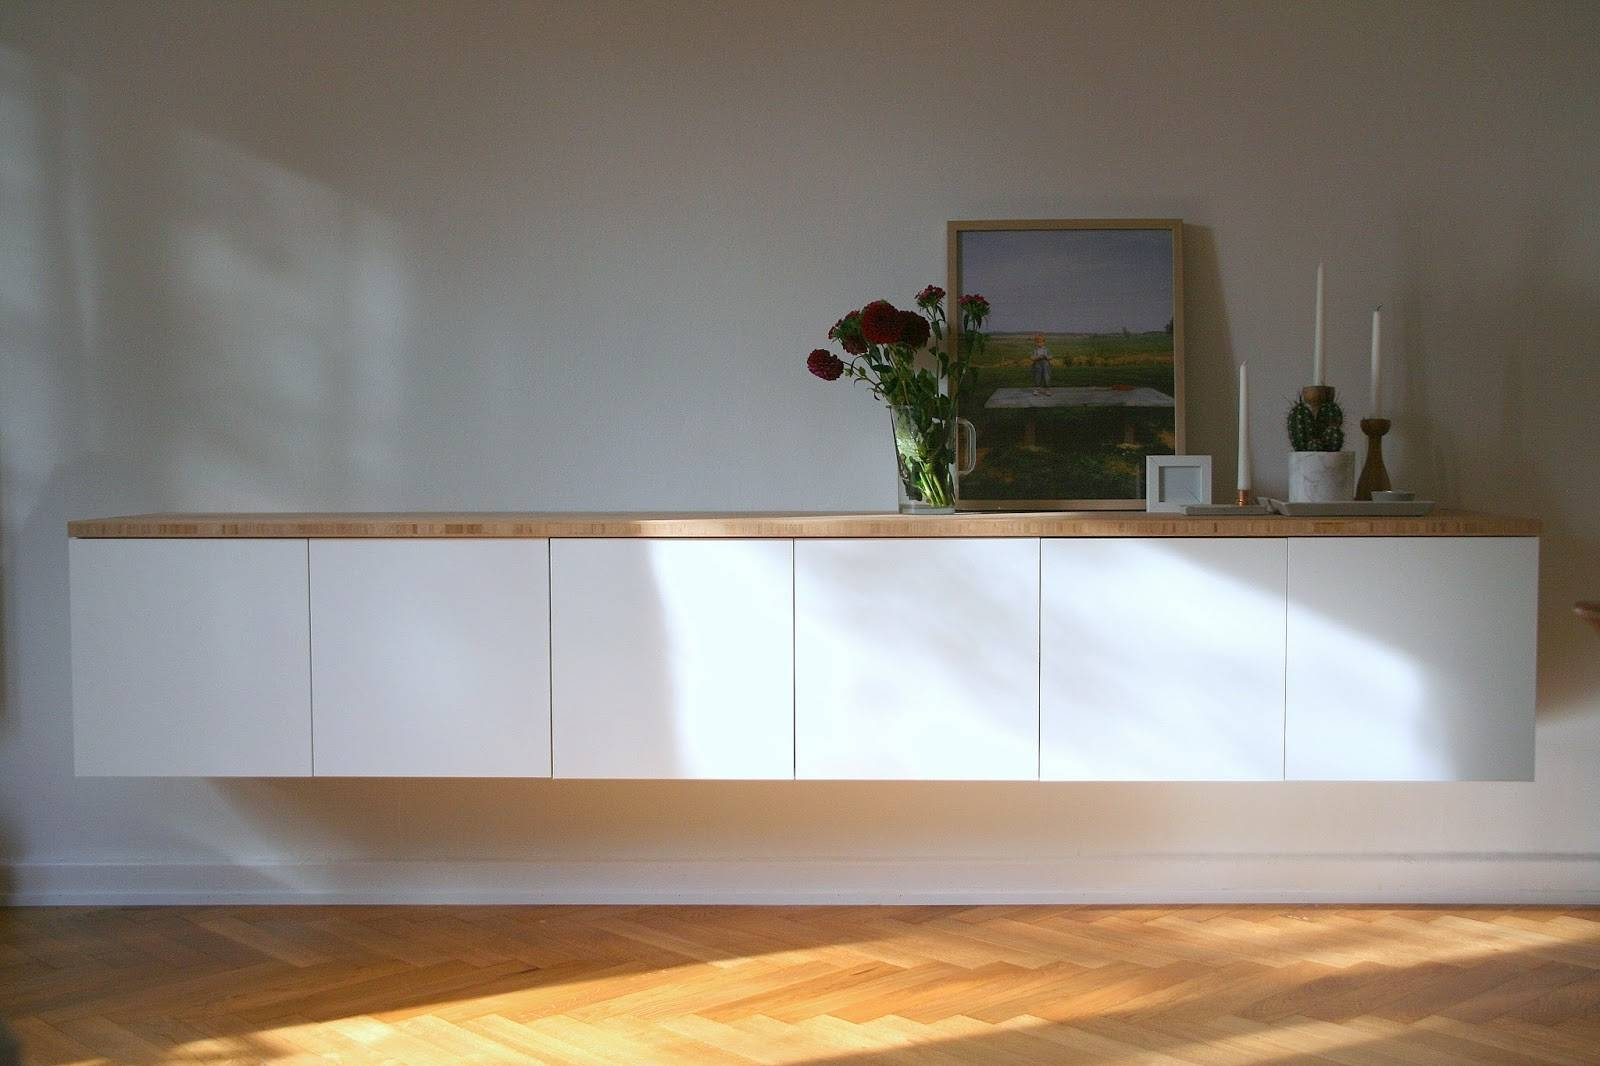 Ikea Fernsehwand Besta Image Gallery Of Ikea Besta Sideboards View 10 Of 15 Photos